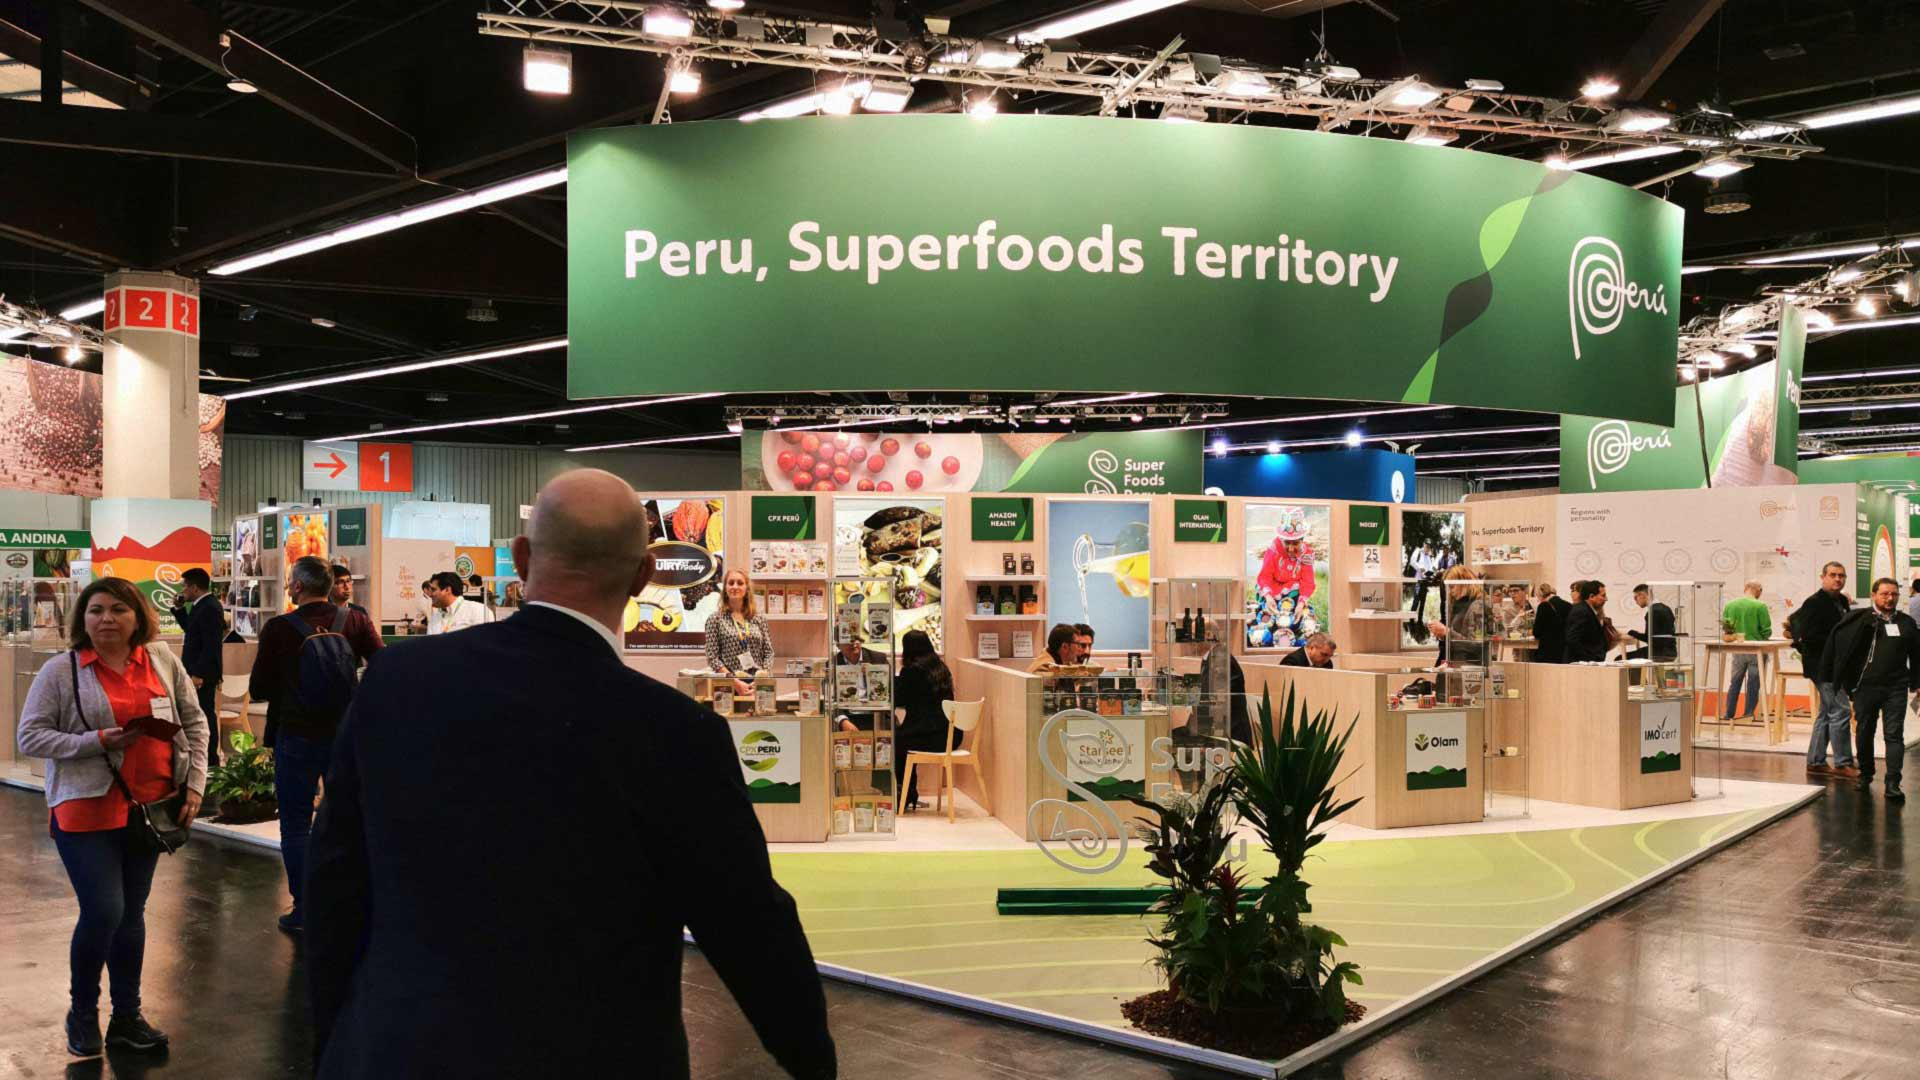 Biofach 2020 - Peru - Superfood-Territorium